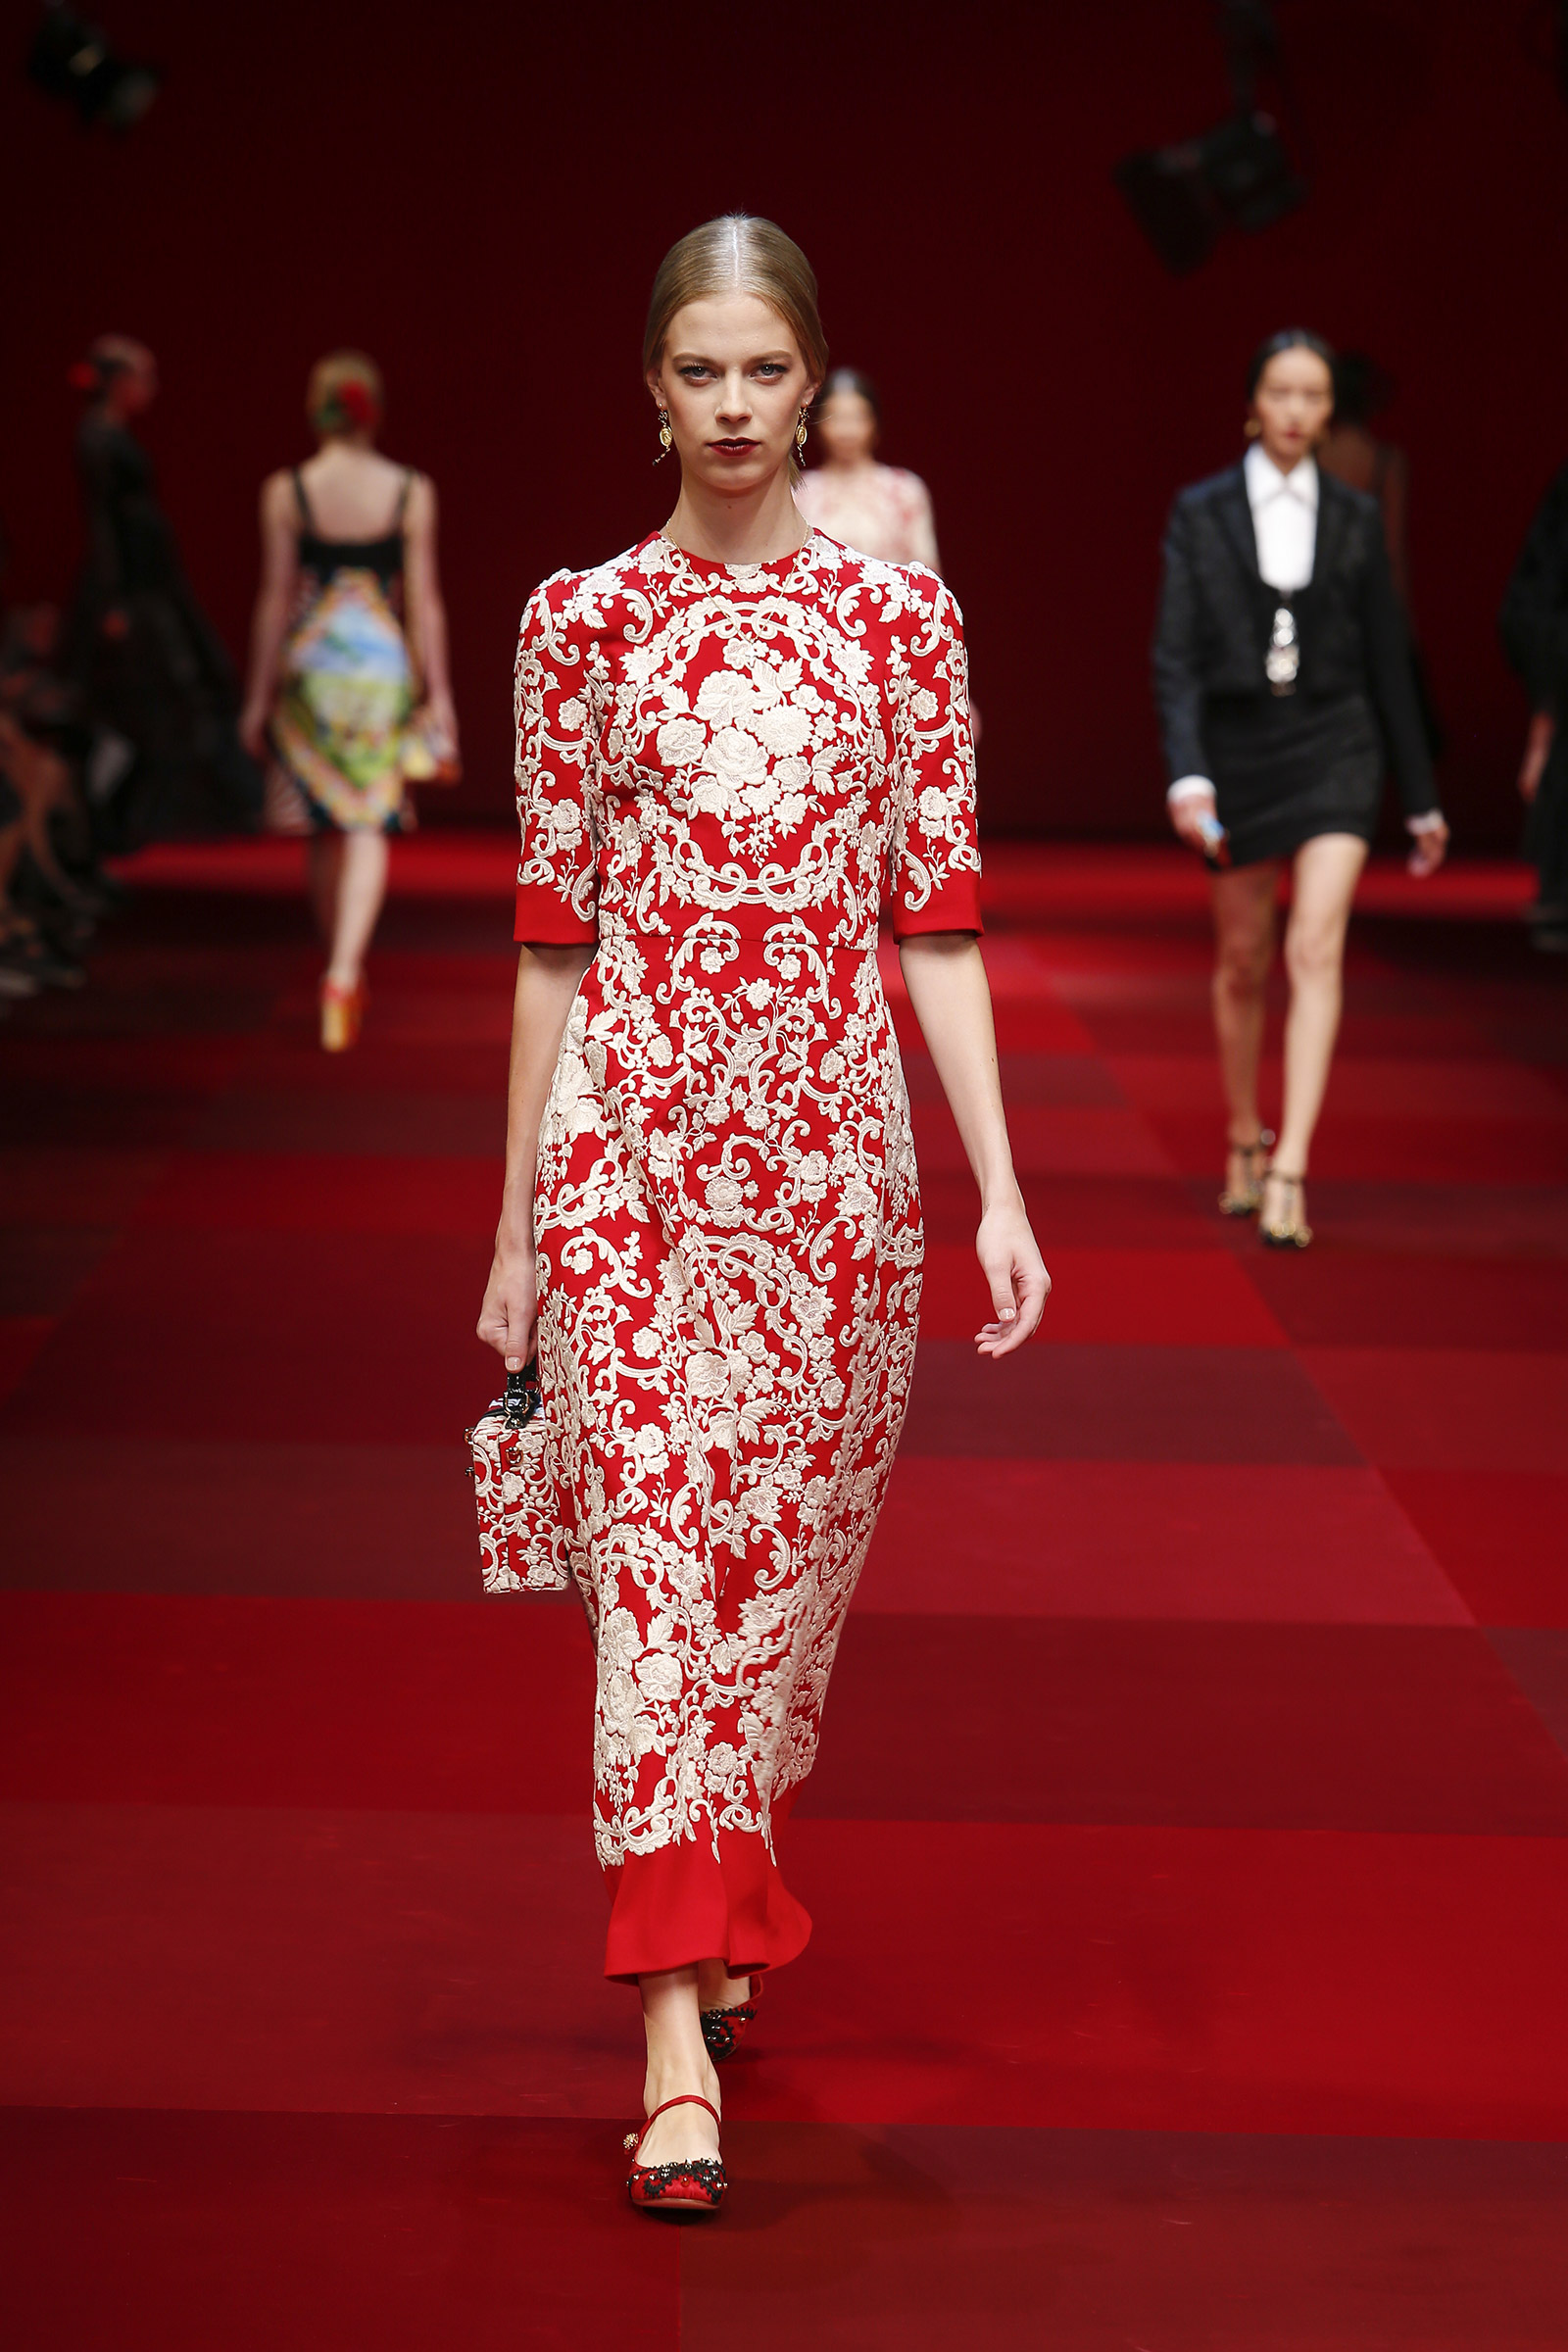 dolce-and-gabbana-summer-2015-women-fashion-show-runway-023 (1)